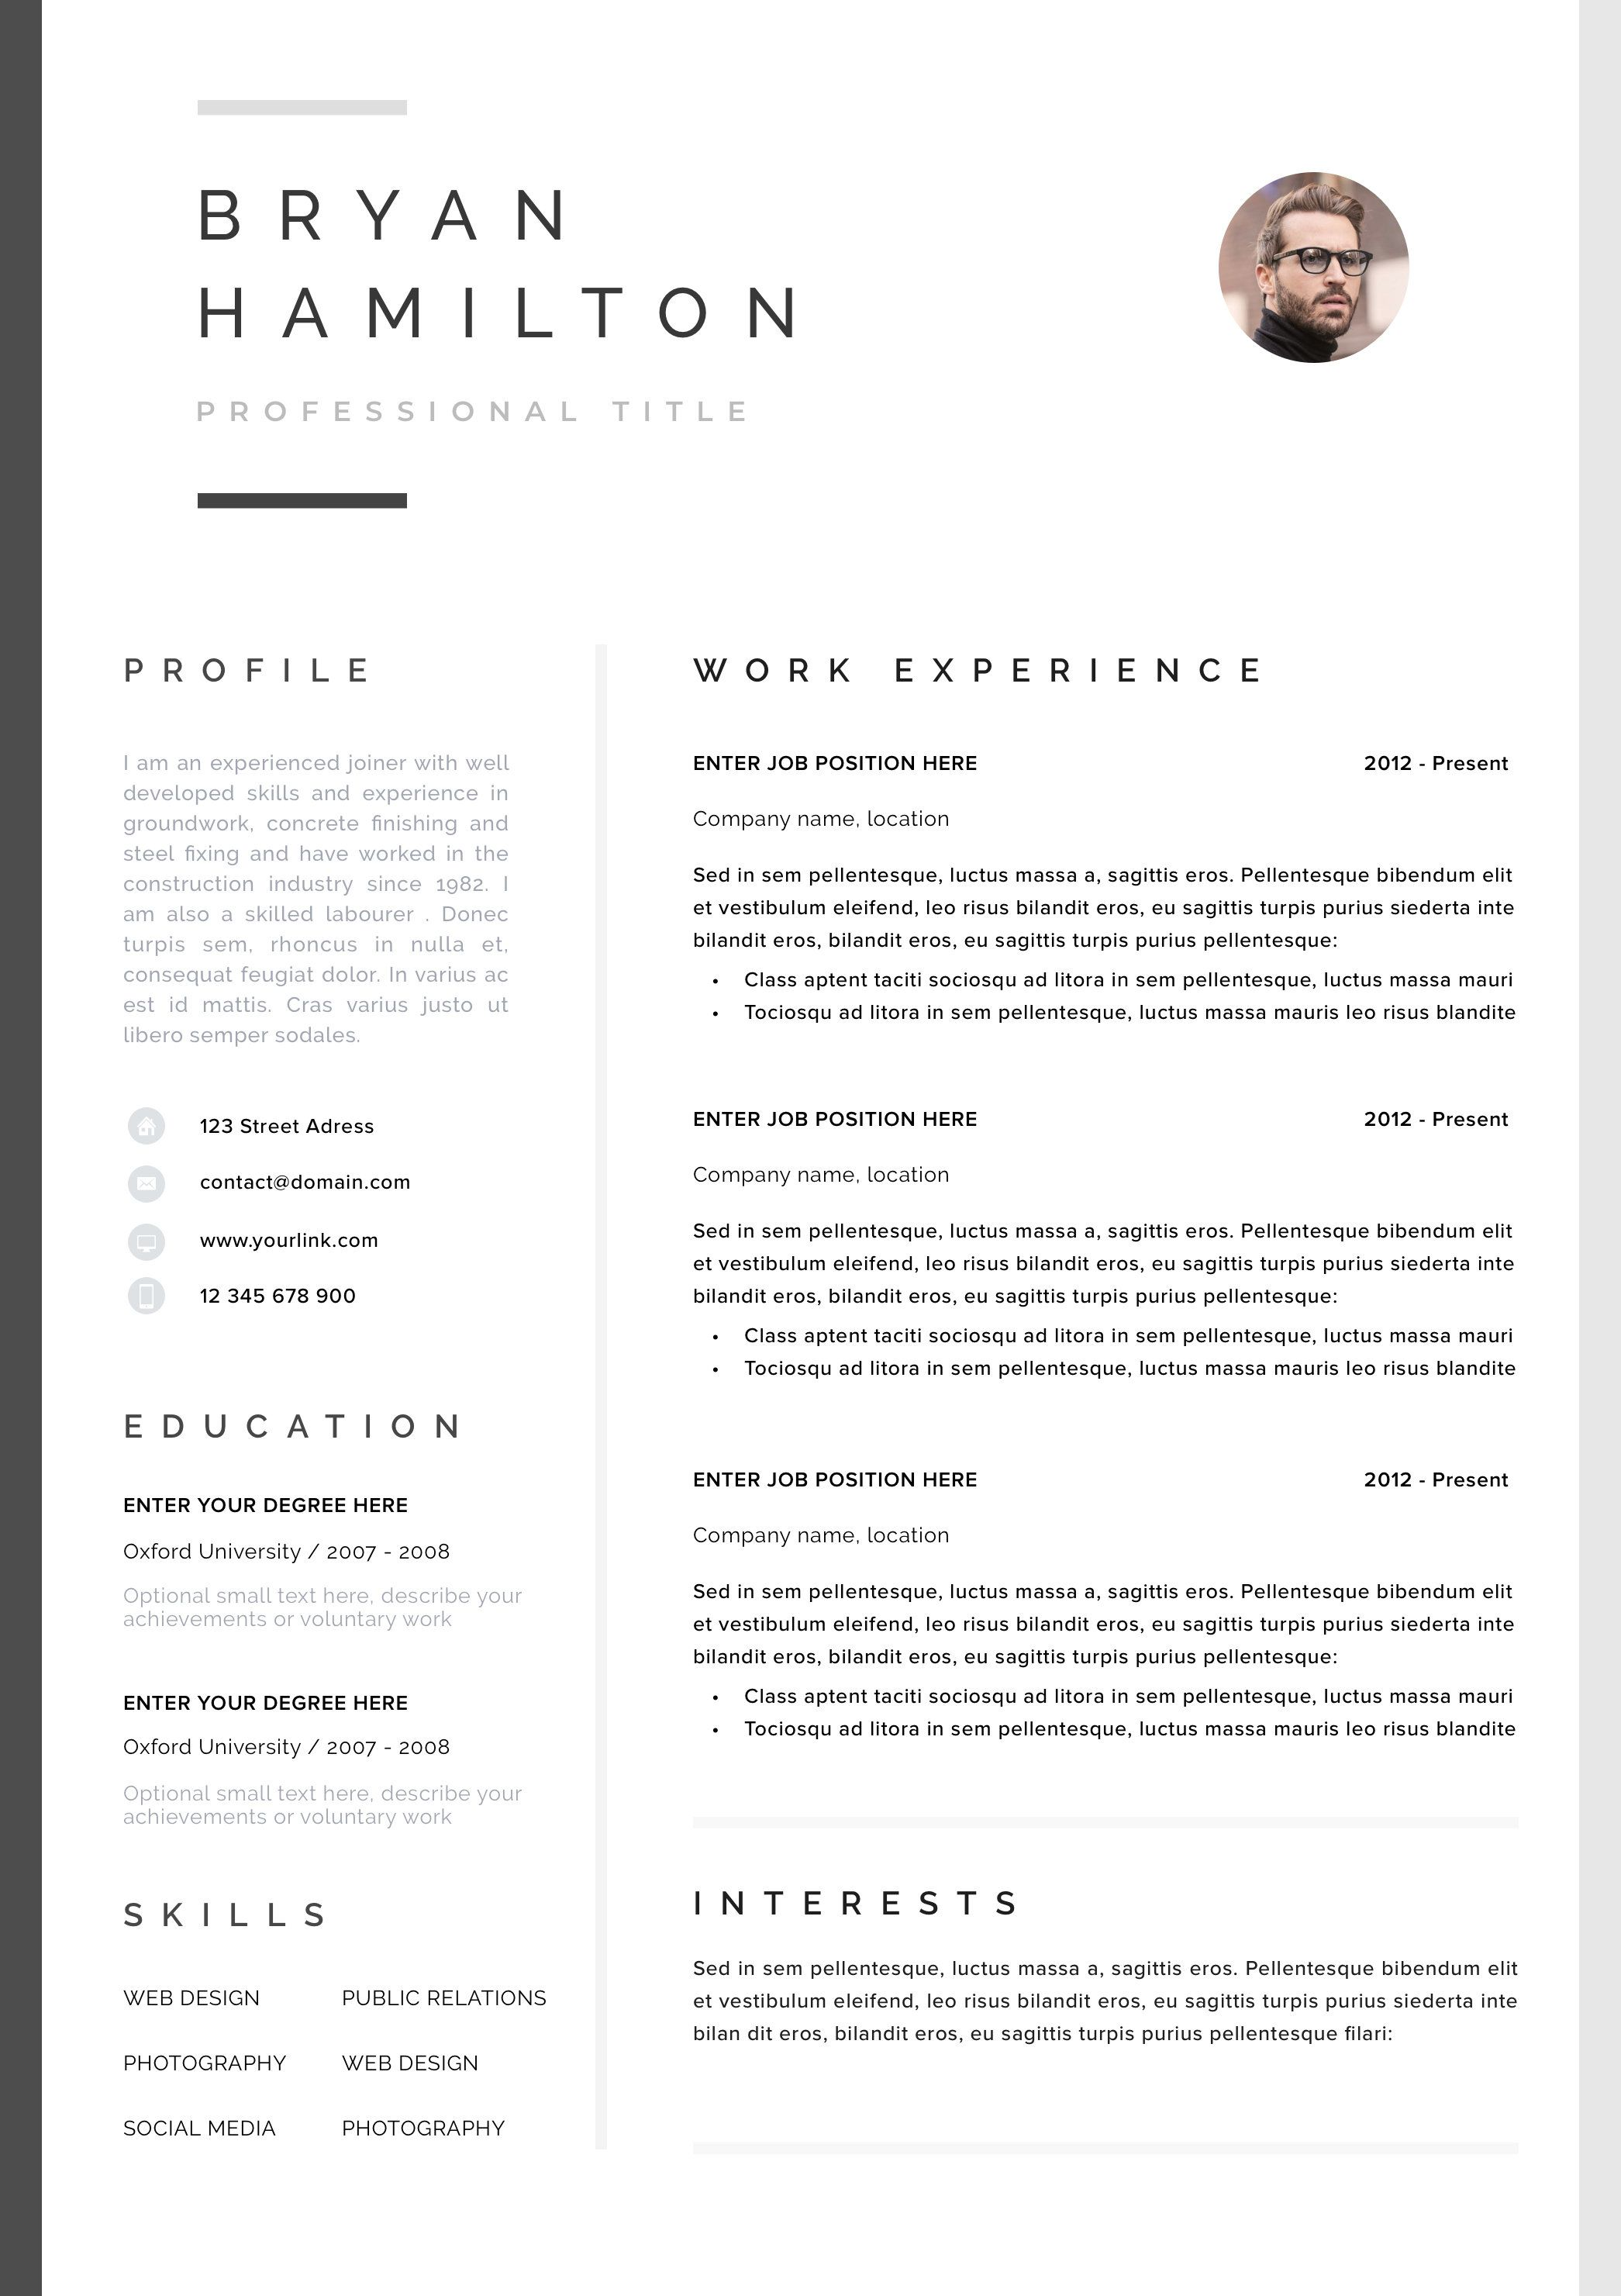 Professional Resume Template Clean Modern Resume Template